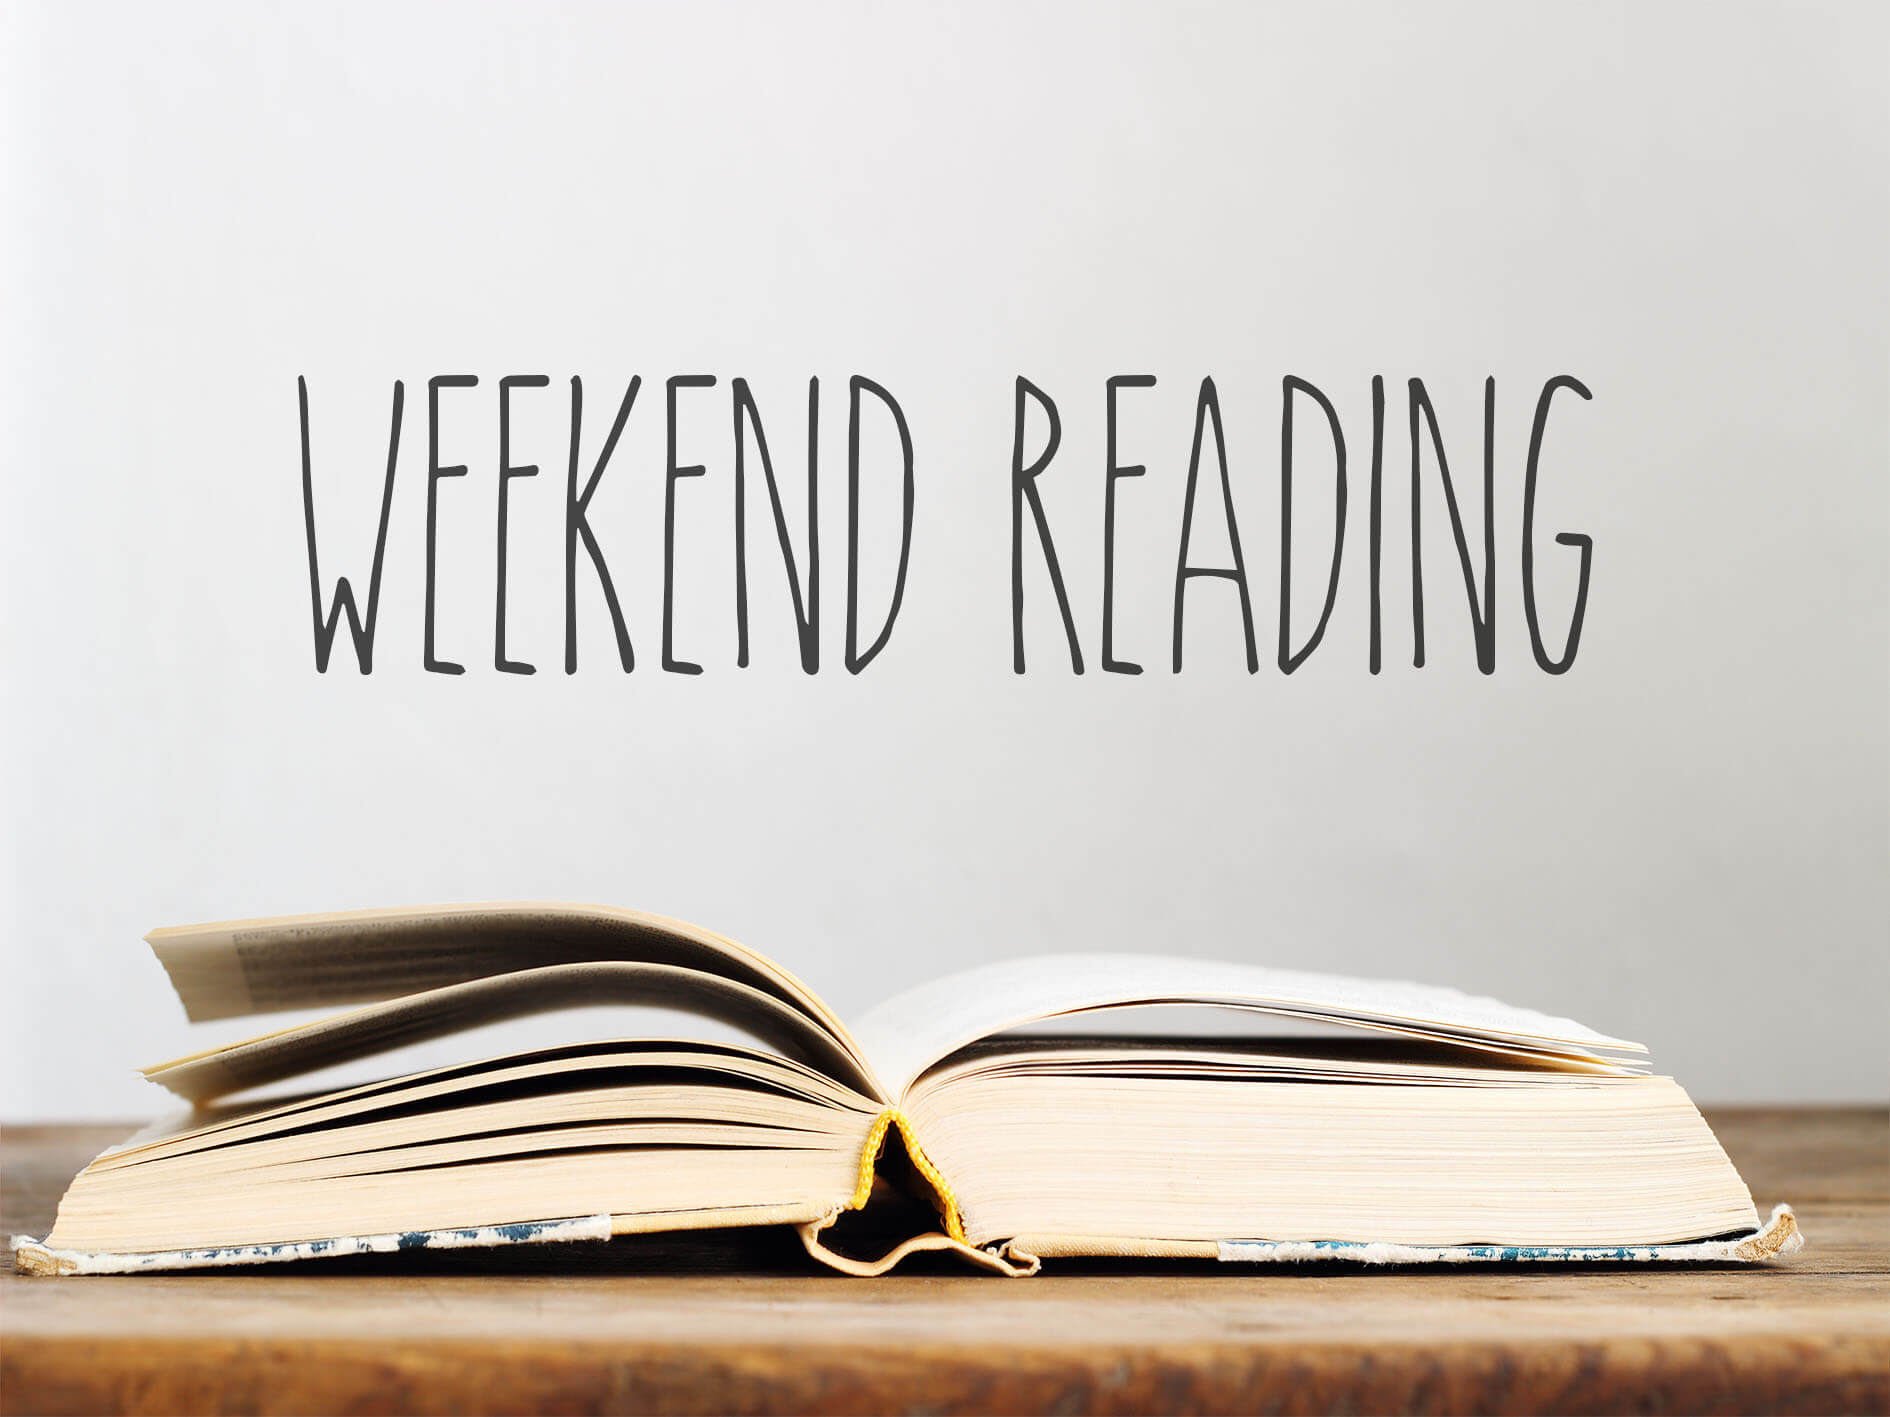 weekend reading with books